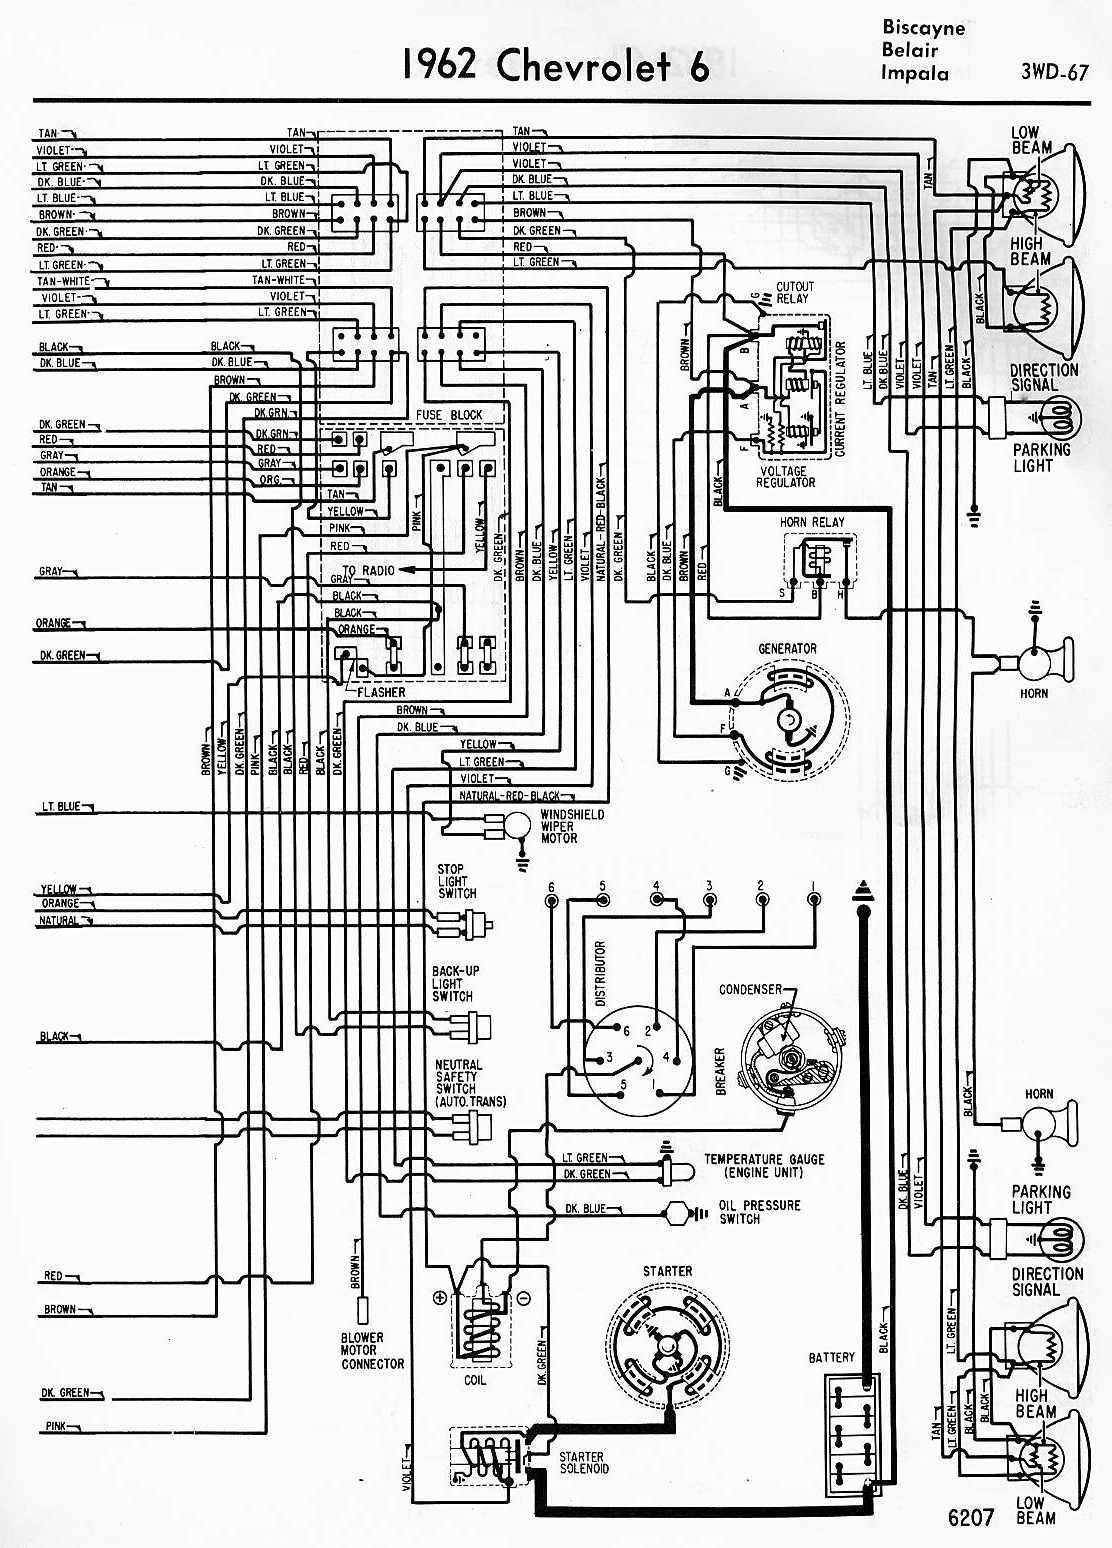 1964 jeep cj5 wiring diagram reveolution of wiring diagram u2022 1976 jeep cj5 wiring  [ 1112 x 1548 Pixel ]